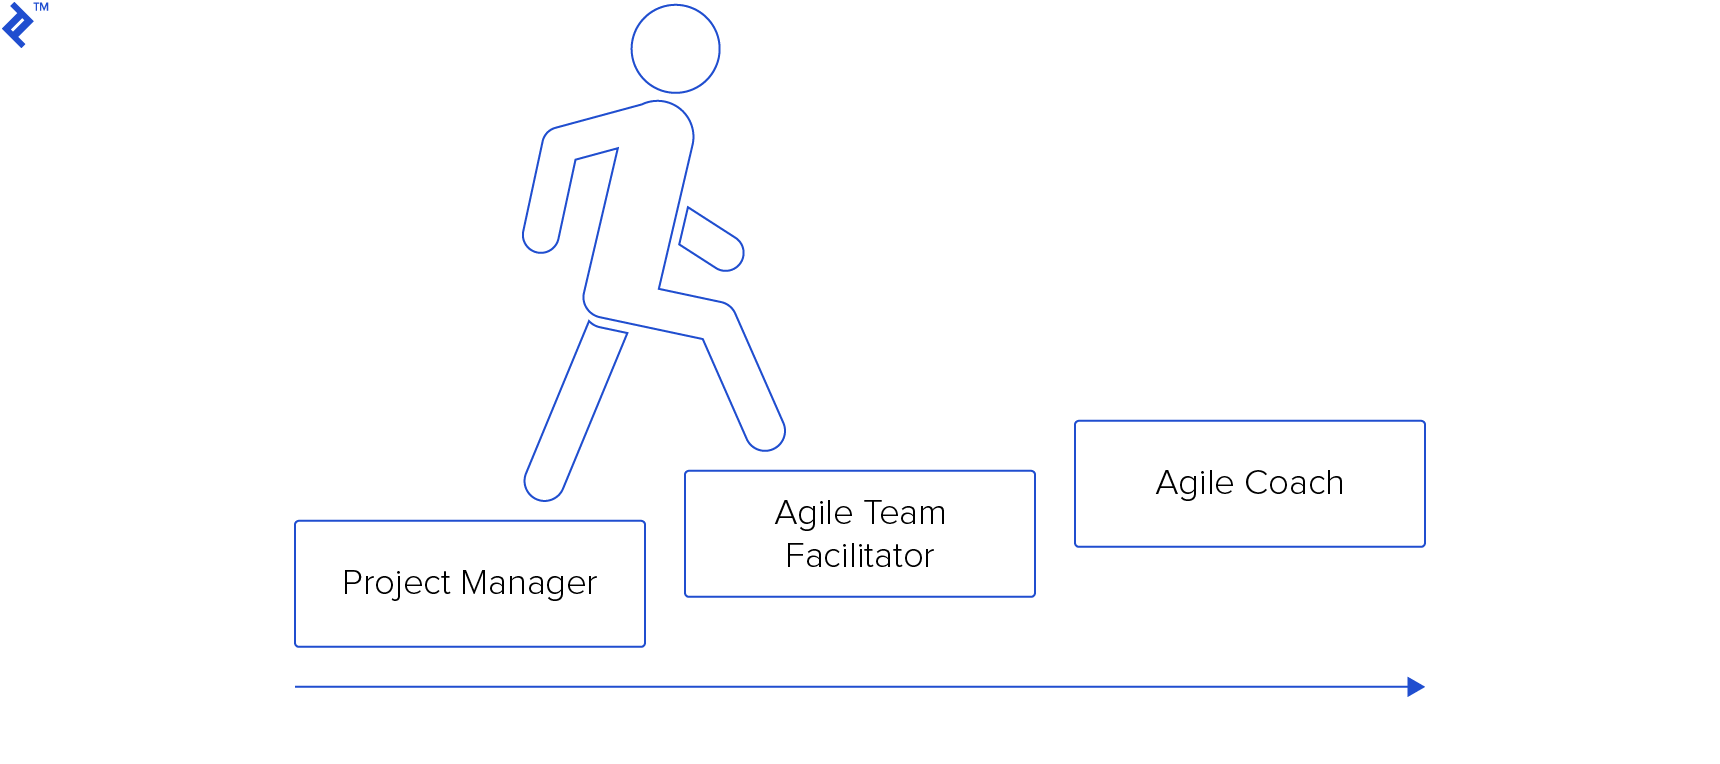 Project Manager career pathway to Agile Coaching